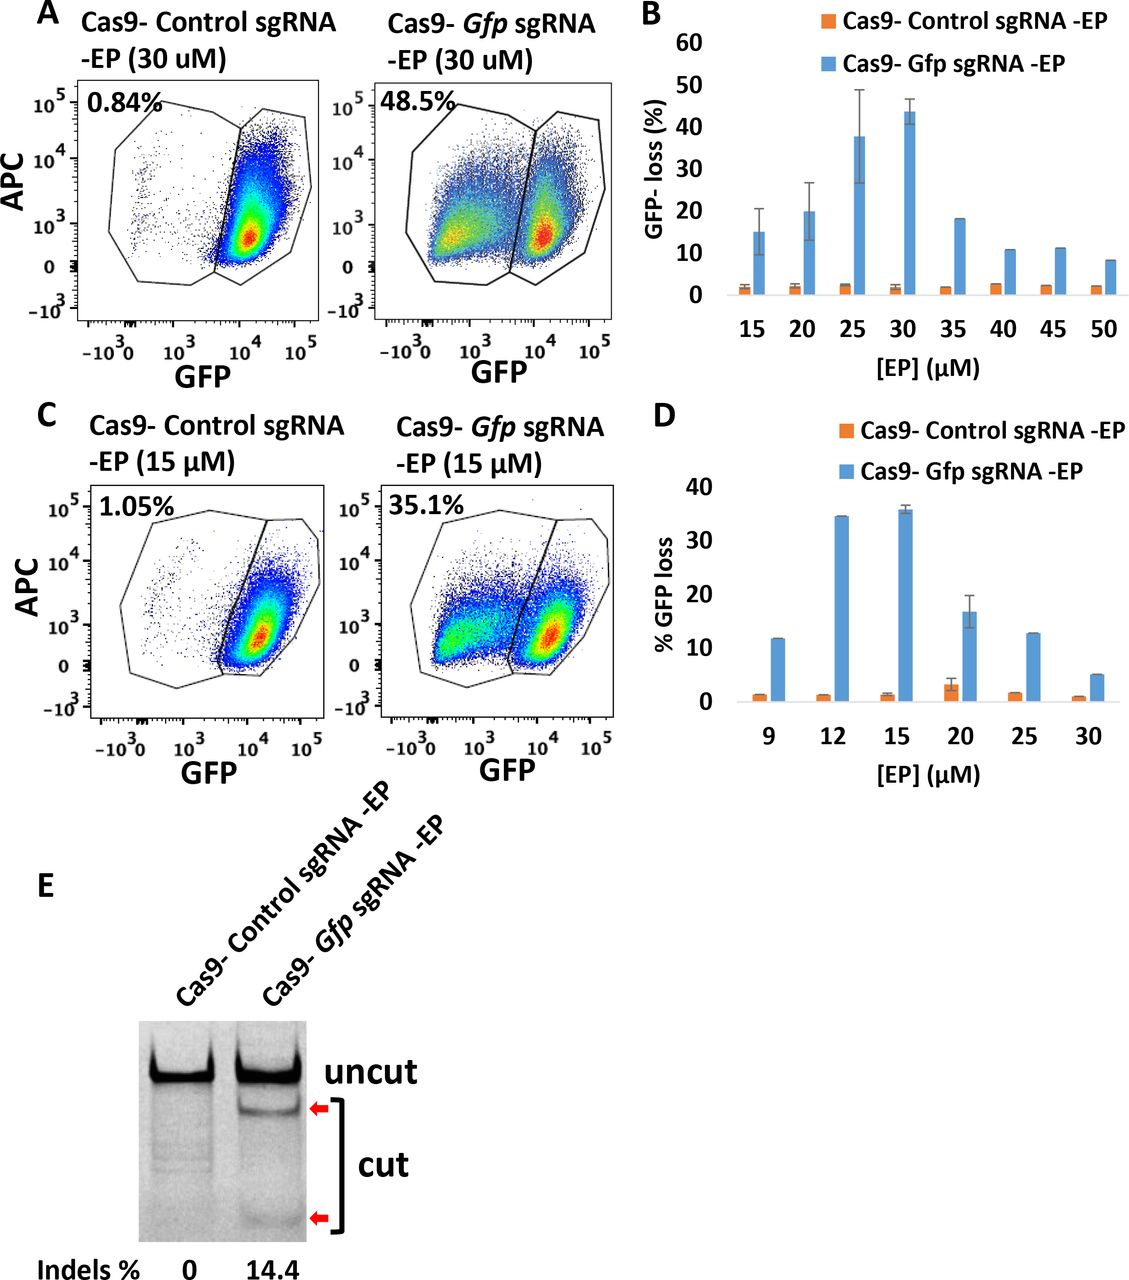 Efficient gene deletion achieved following the treatment with CriPs targeting Gfp in primary GFP pre-adipocytes isolated from GFP mice. (A, C) Flow cytometry data of primary GFP pre-adipocytes treated with CriPs formulated in (A) <t>NEBuffer</t> 3 or (C) PBS. Cas9-sgRNA: 100 nM. (B, D) Different concentrations of EP with 100 nM of Cas9-sgRNA formulated in (B) NEBuffer 3 or (D) PBS. (E) Percent Indels measurements by T7E1 assay in genomic DNA isolated from primary GFP pre-adipocytes. Uncut: 401 bp, Cut: 288 bp + 113 bp.